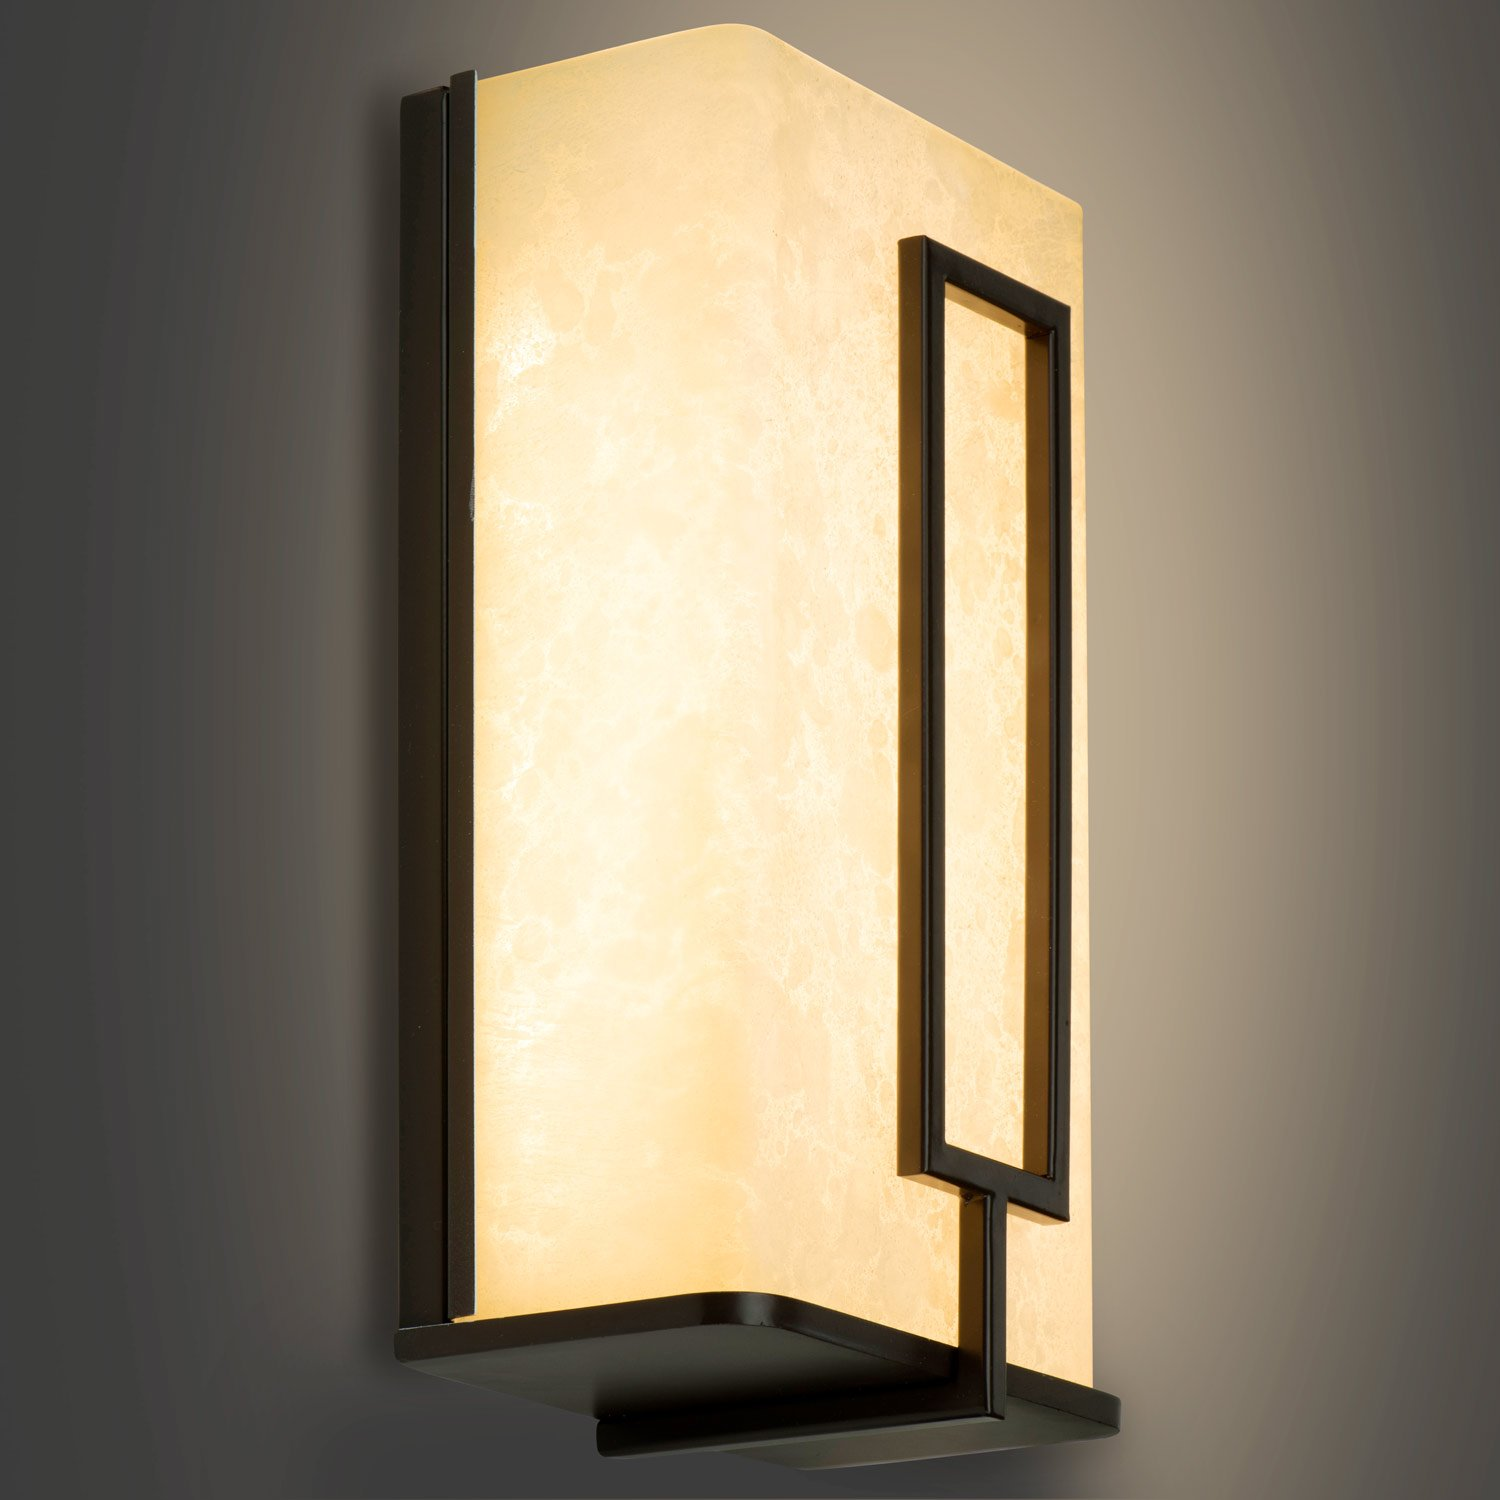 10-Inch 3000K Warm White Oil Rubbed Bronze with Amber Alabaster Glass ETL and ENERGY STAR Listed Dimmable Light Blue USA 550 Lumens LB74121 LED Wall Sconce